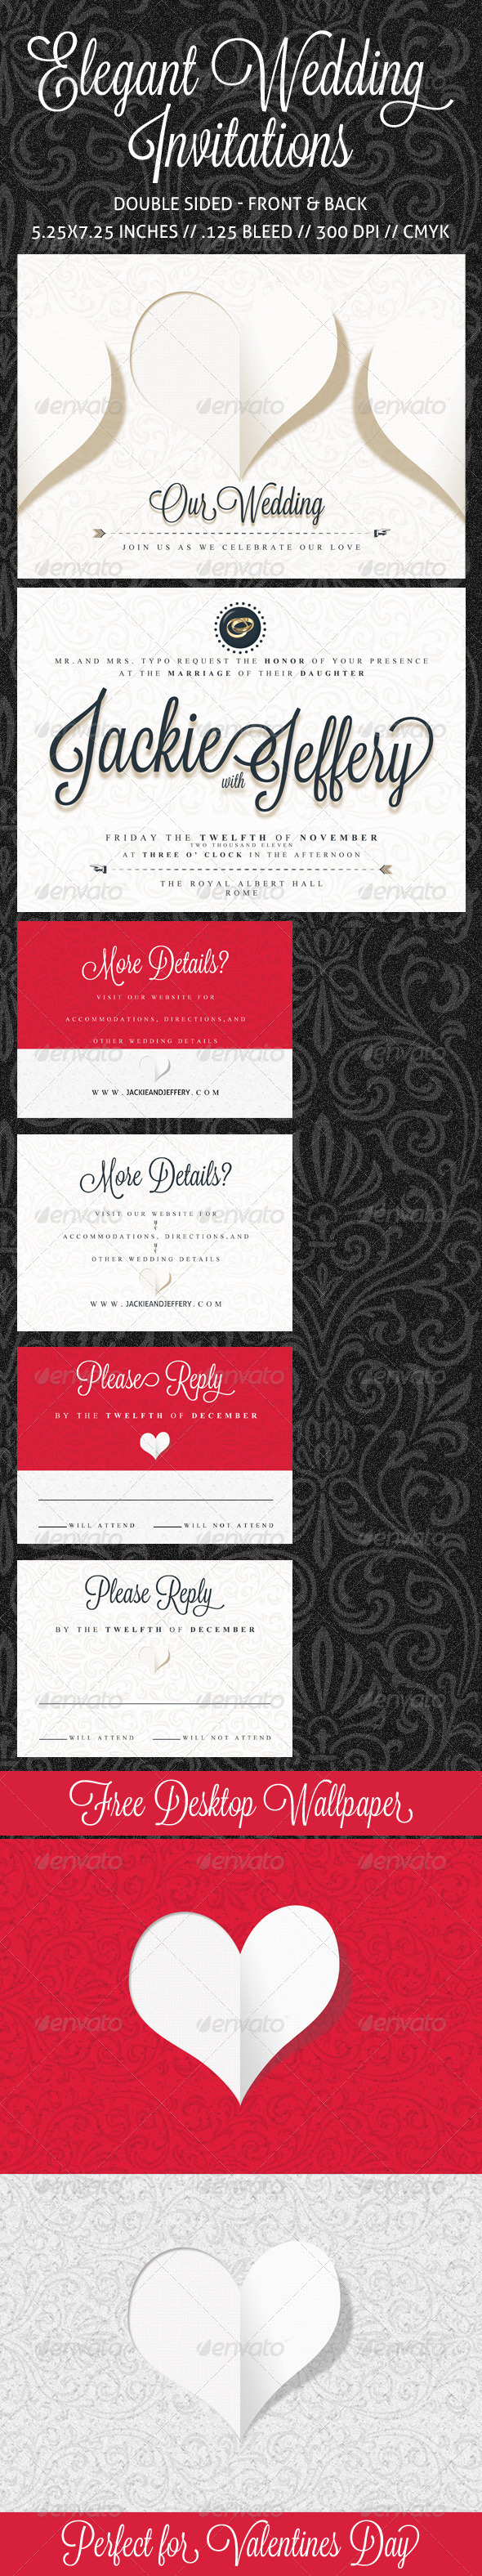 Marriage Wedding Invitation Templates from GraphicRiver (Page 28)